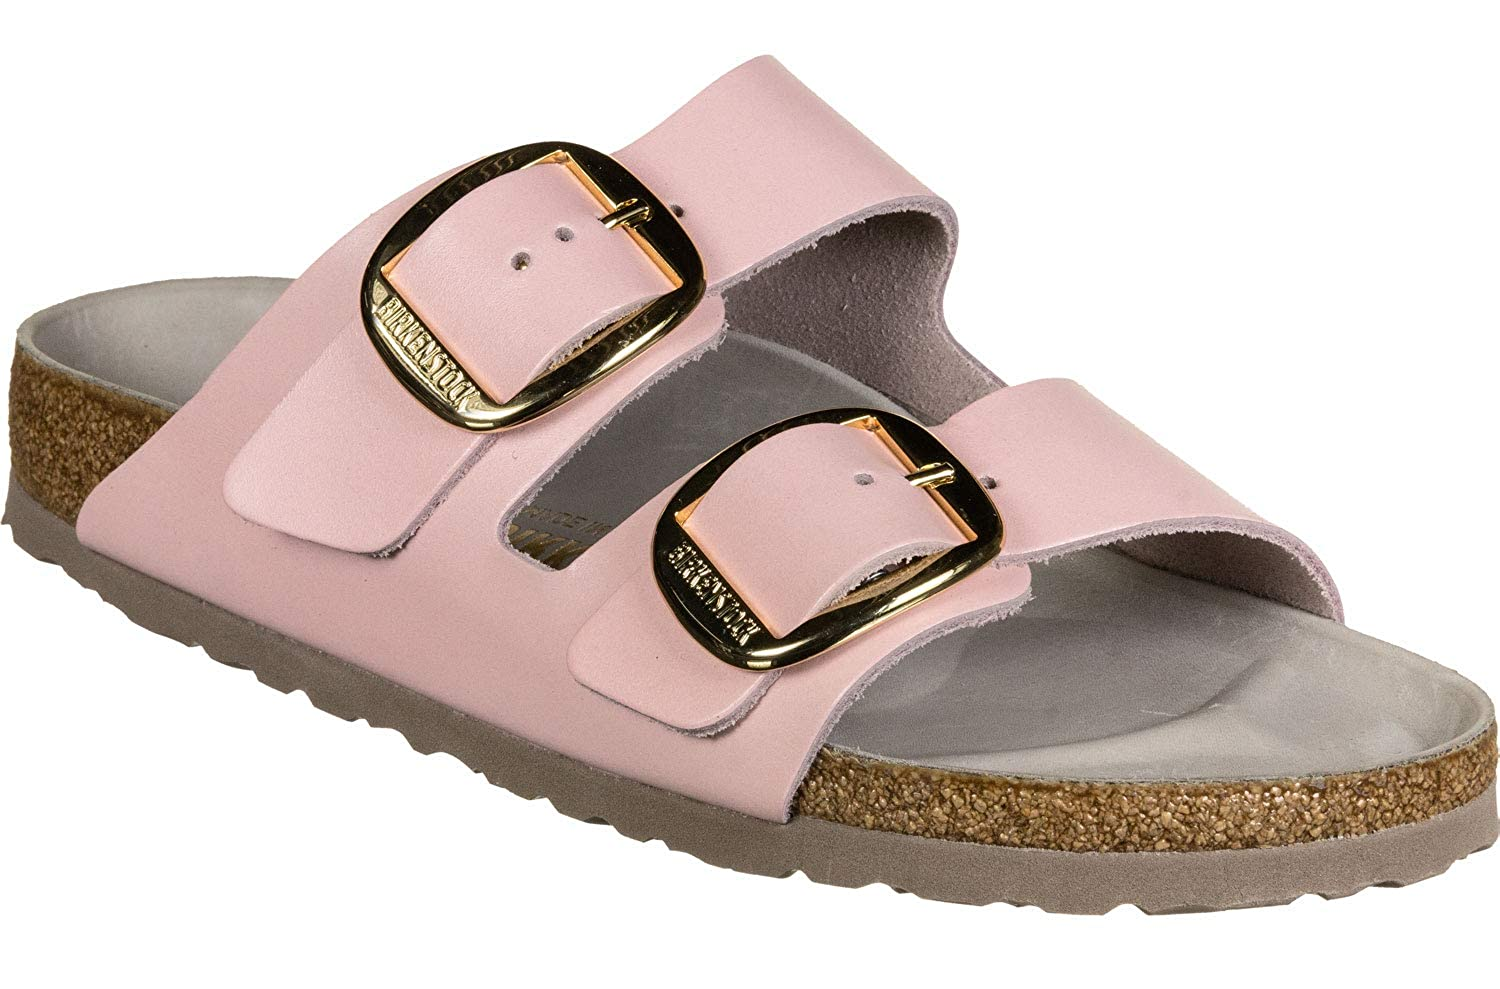 Birkenstock Arizona Big Buckle NL W Sandal: Amazon.co.uk